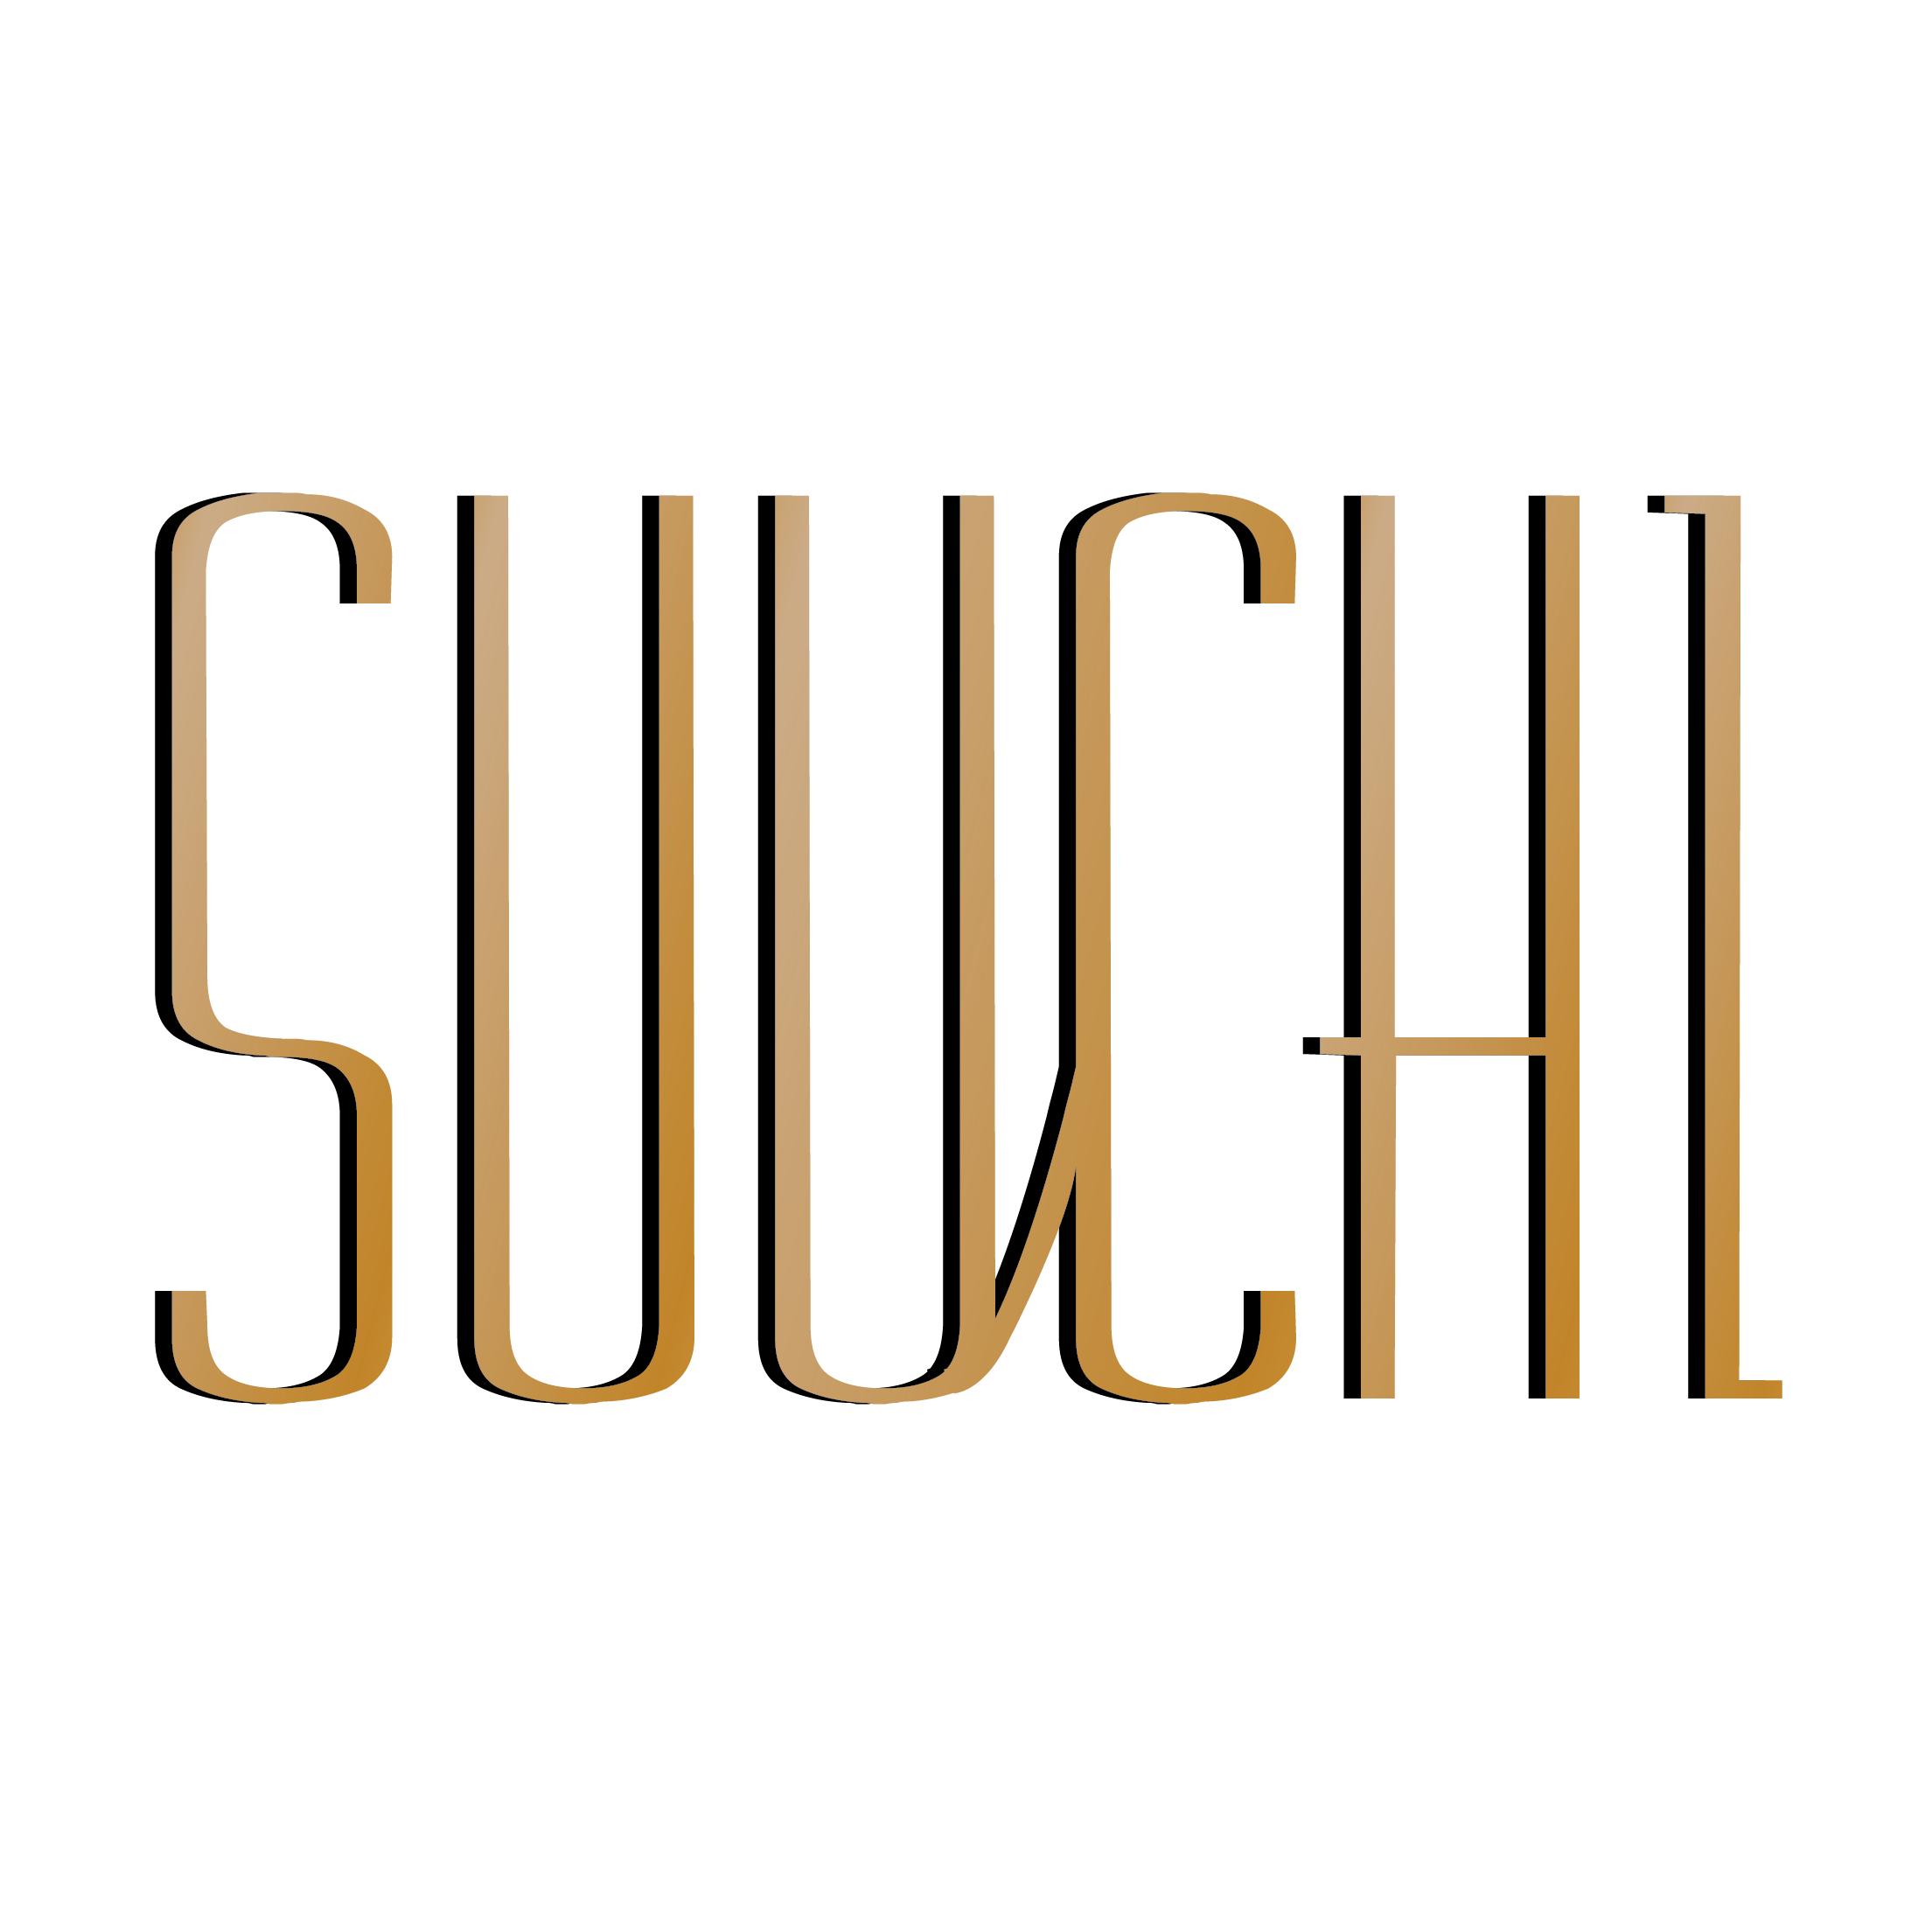 Suuchi Receives $8M Growth Investment from Edison Partners.